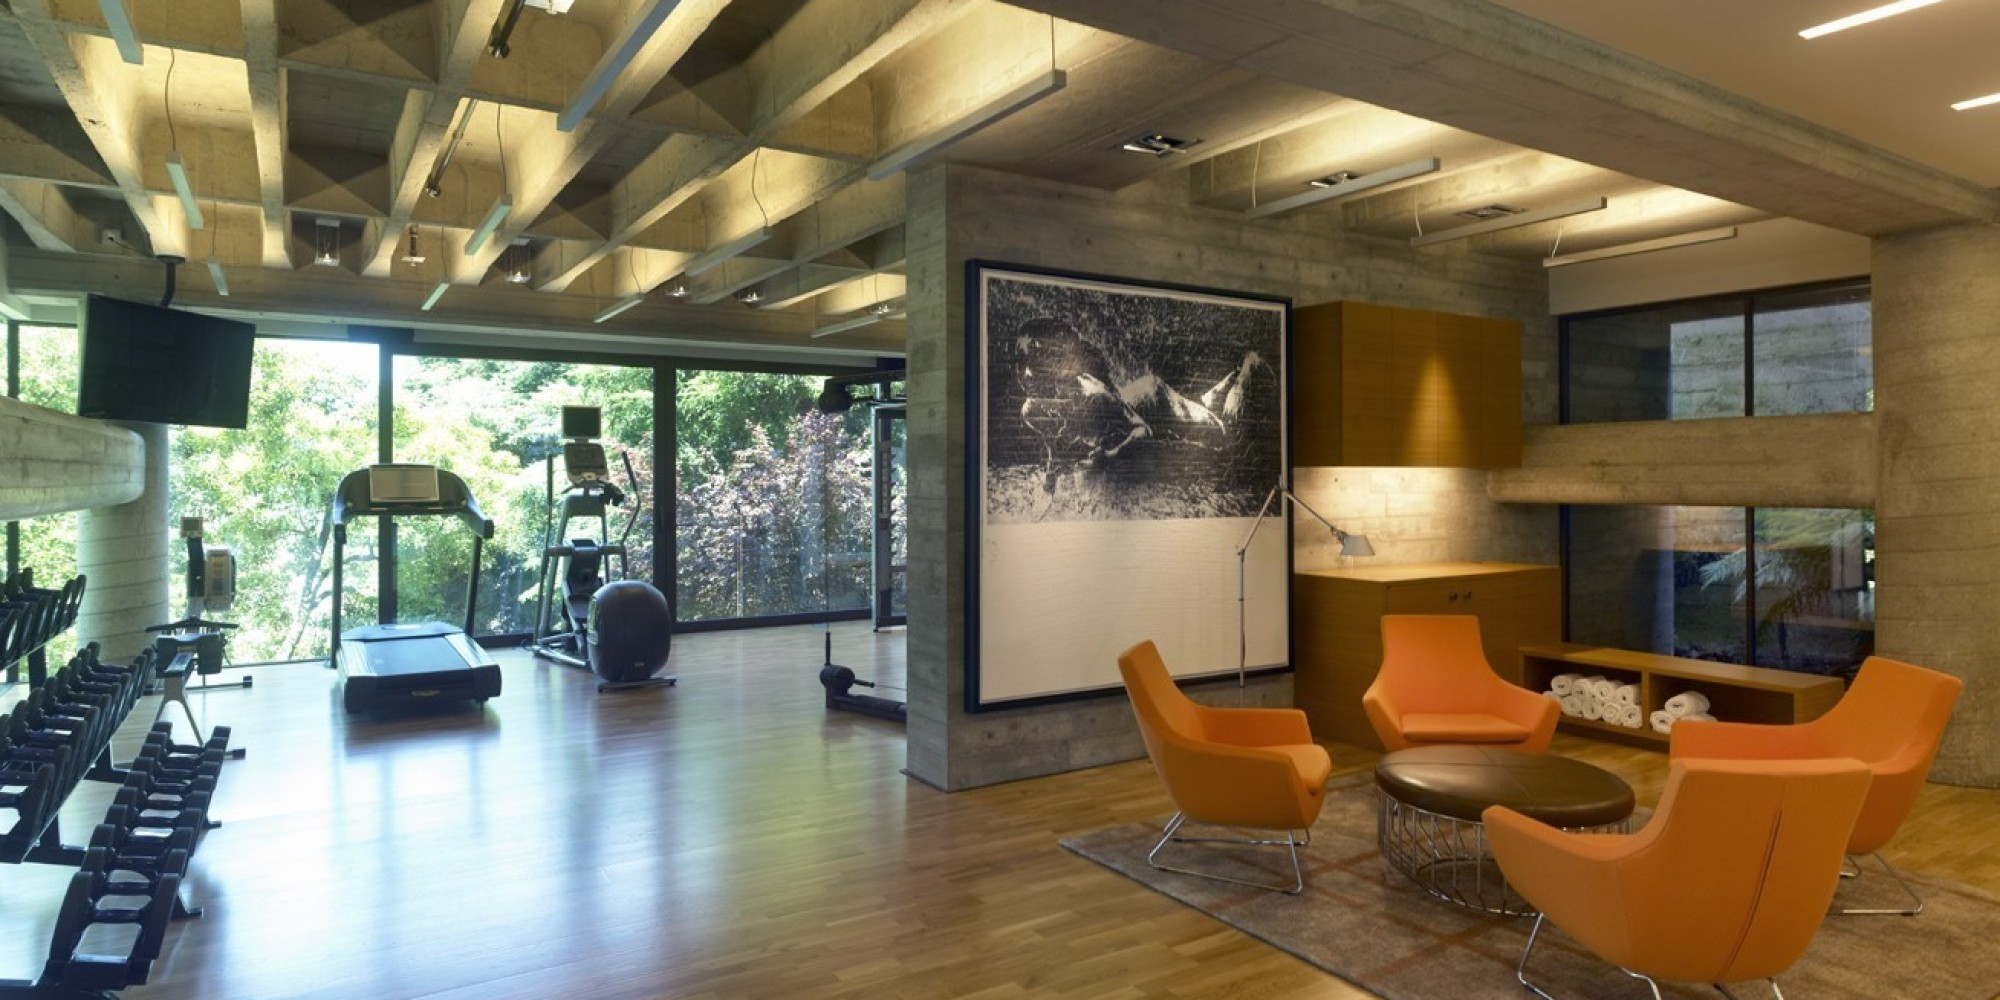 6 Impressive Home Gyms That Offer The Ultimate Personal Fitness Oasis |  HuffPost